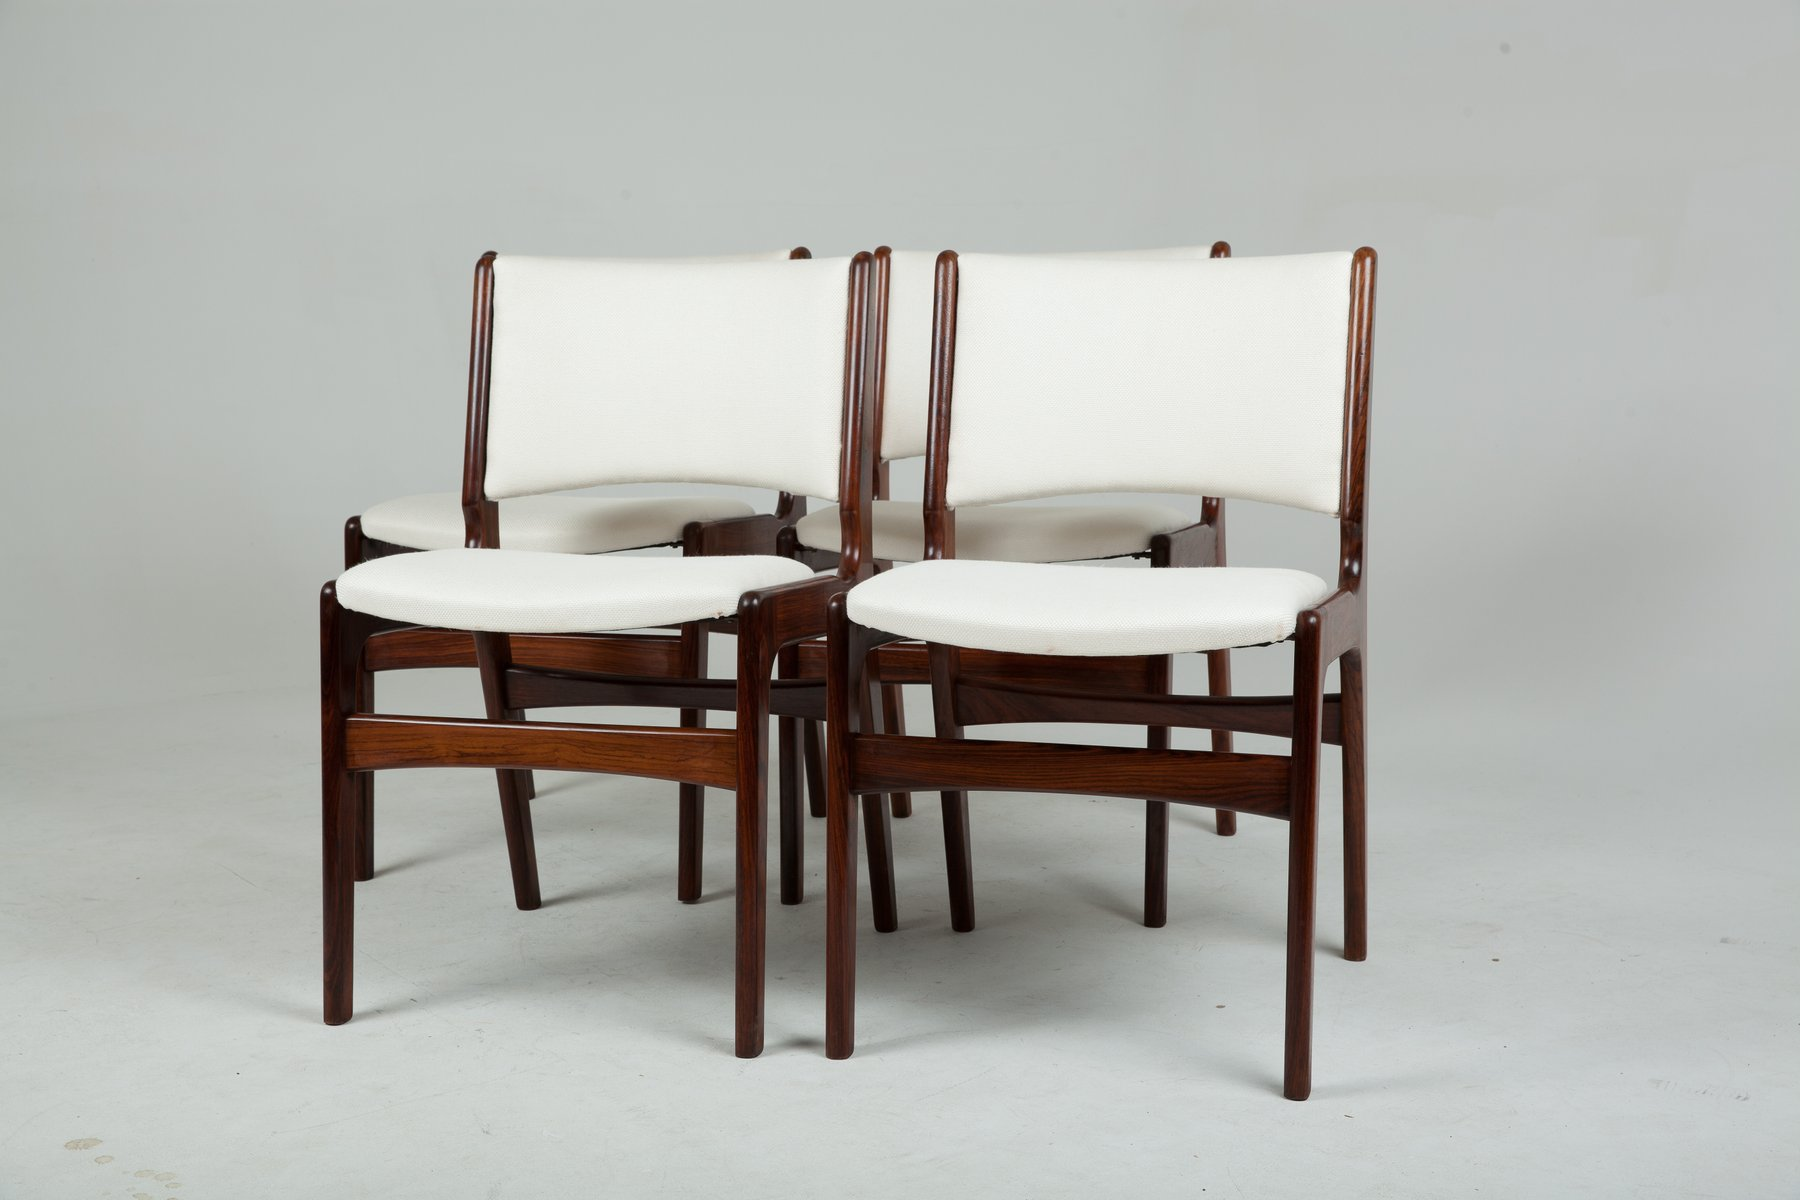 Solid Rosewood Chairs by Erik Buch 1960s Set of 4 for sale at Pamono